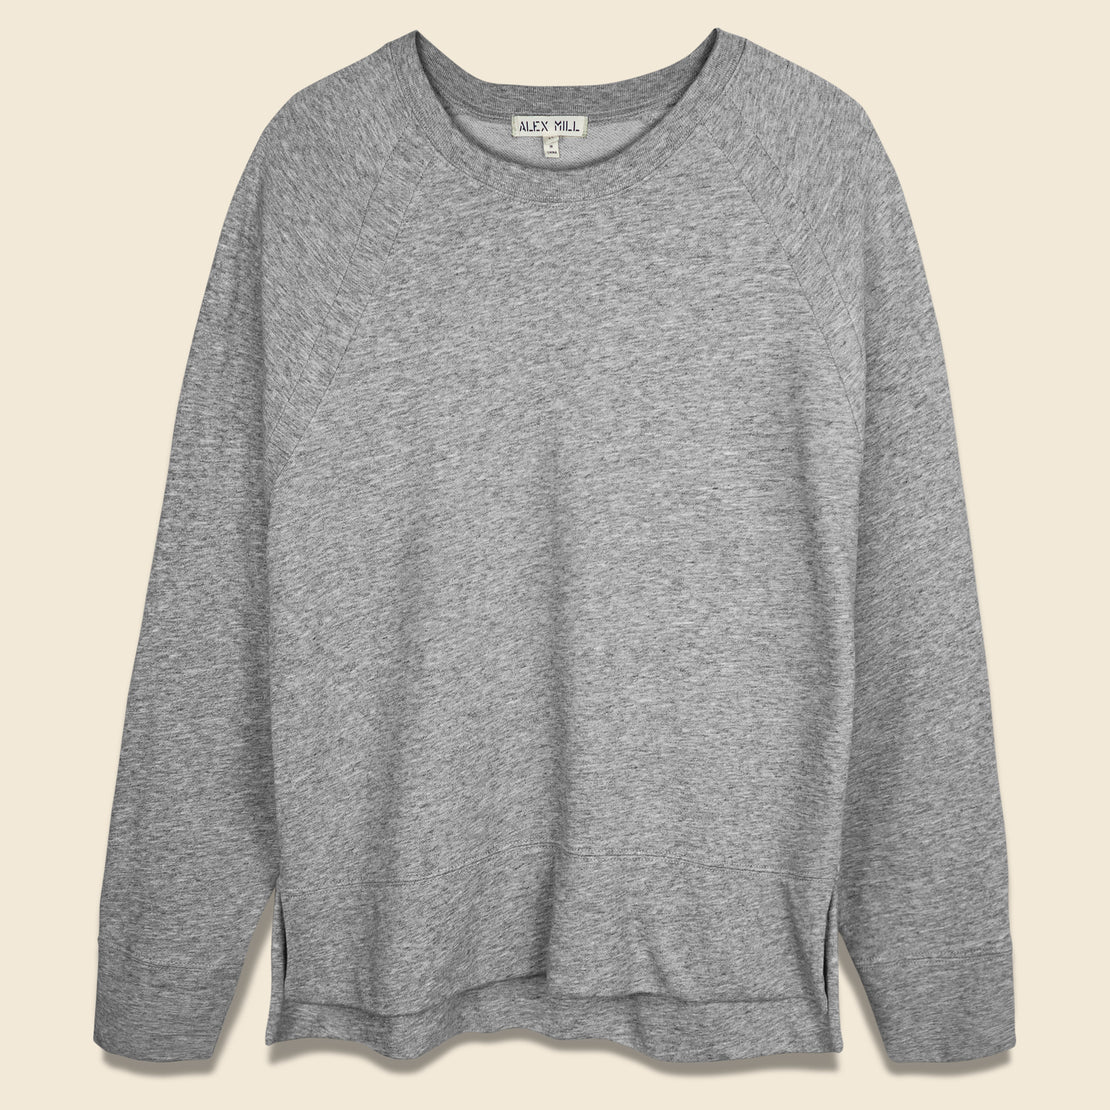 Alex Mill Jessie Pullover Sweatshirt - Heather Grey